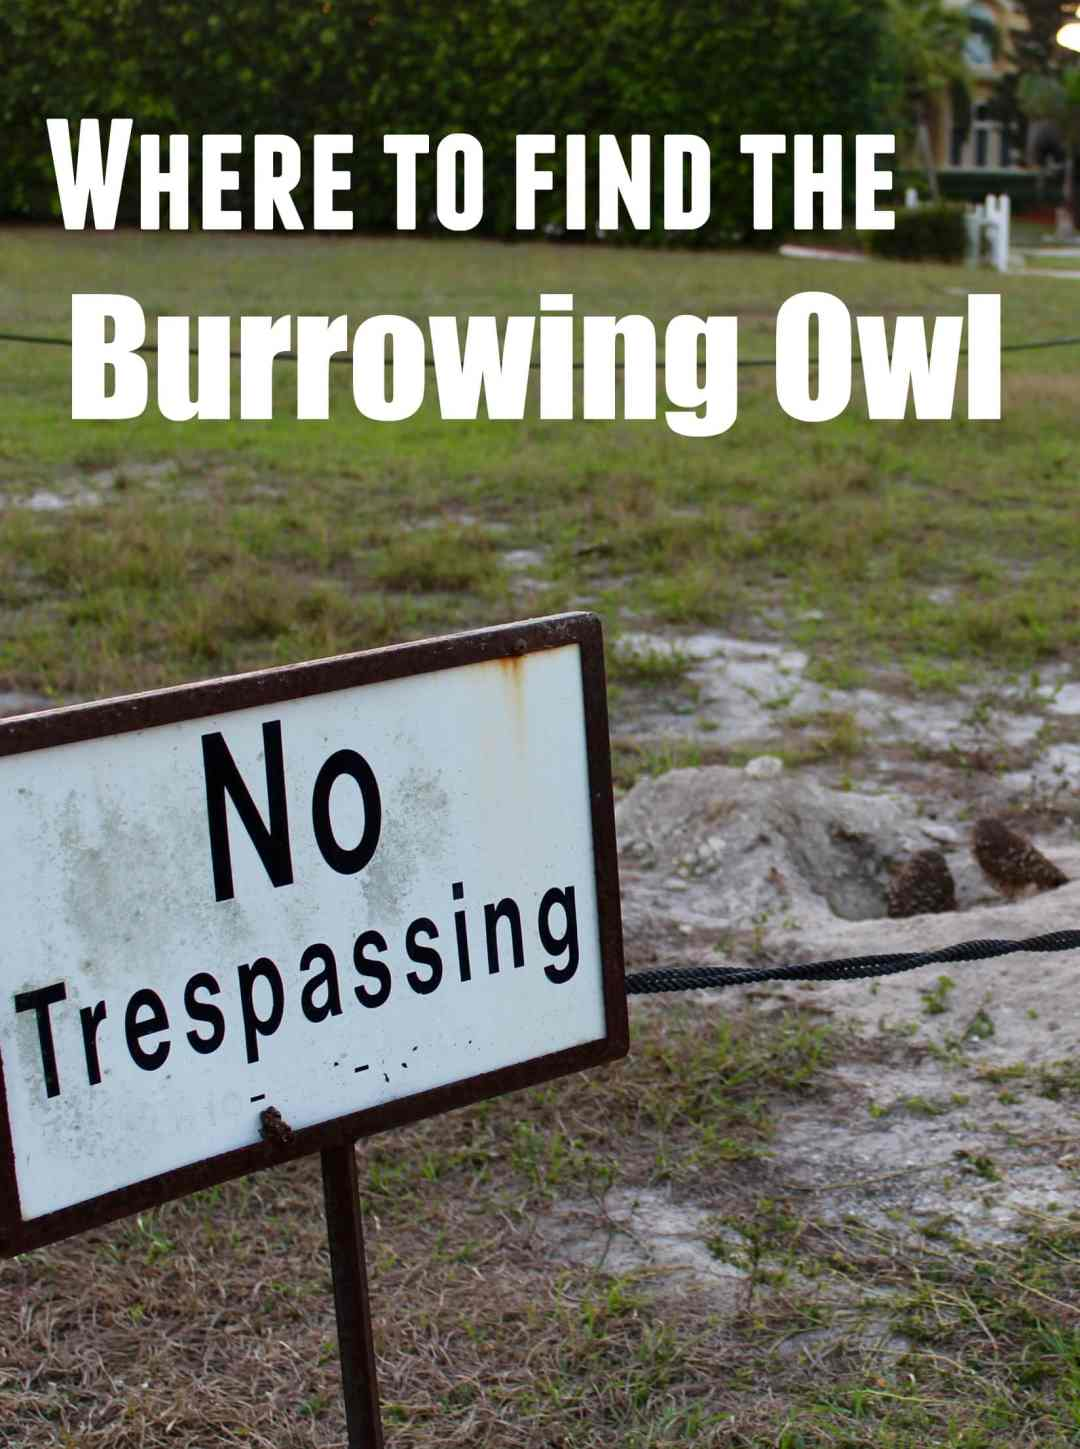 Marco Island is filled with Burrowing Owls. They are a must see for any visitor to the Island.